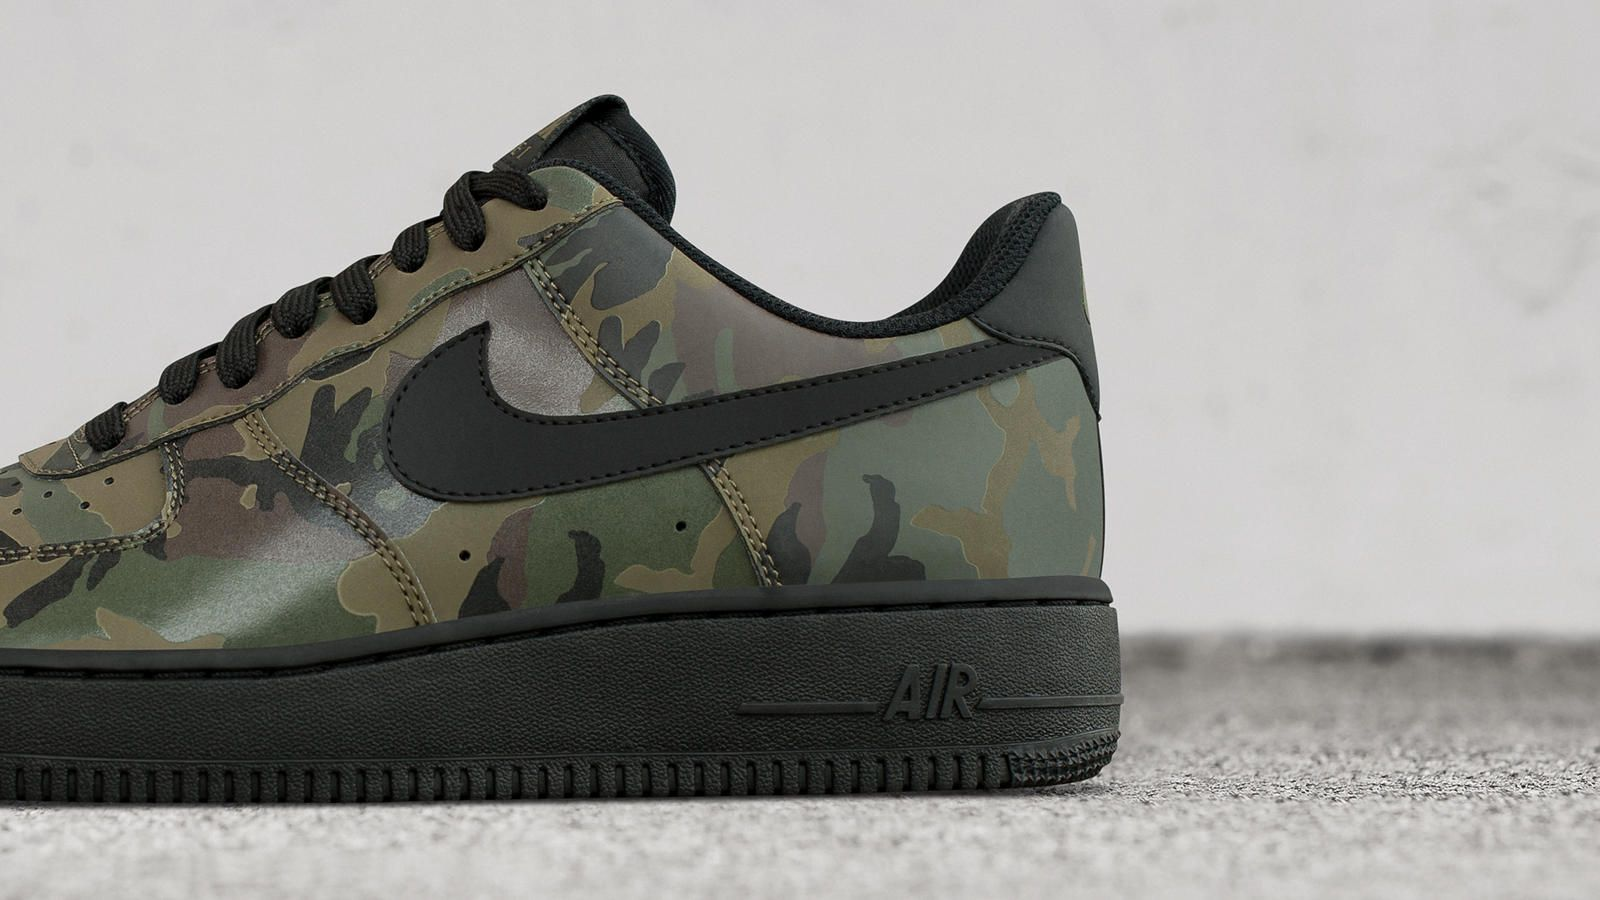 Nike Air Force 1 Low Camo Reflective Pack. Add to